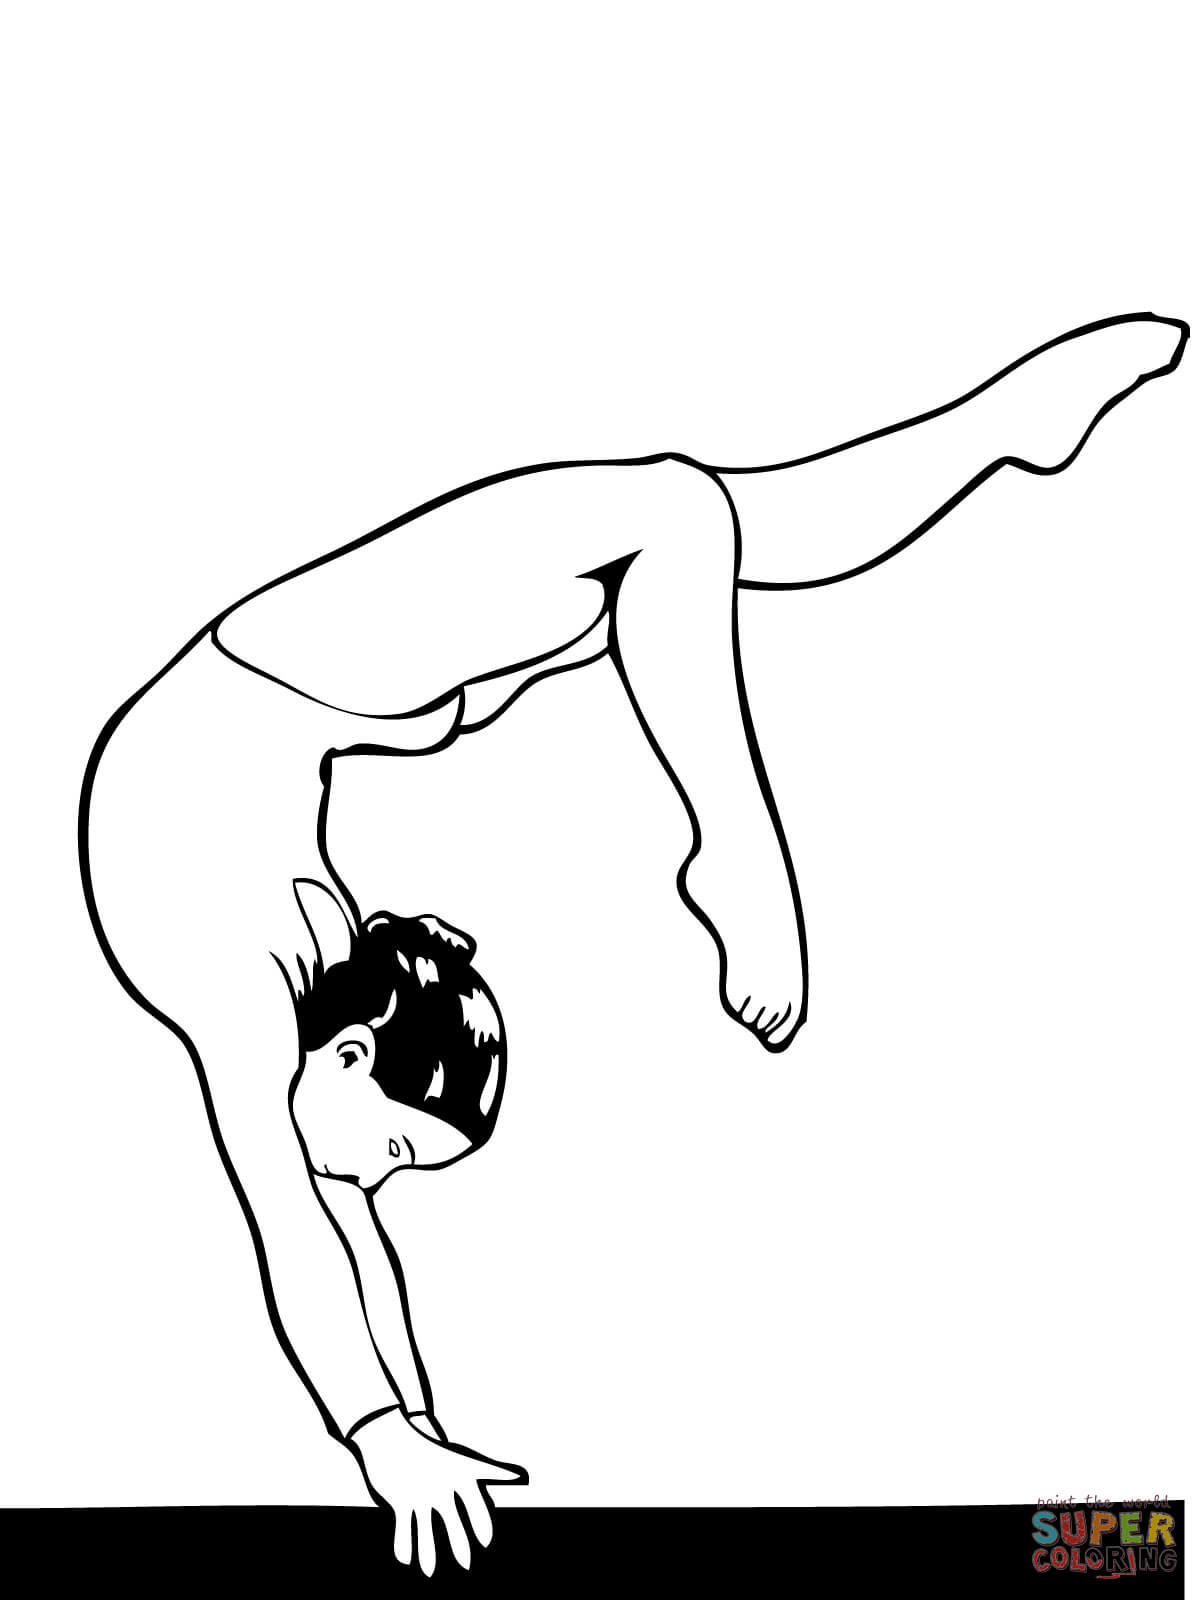 Full Turn On Balance Beam Coloring Page